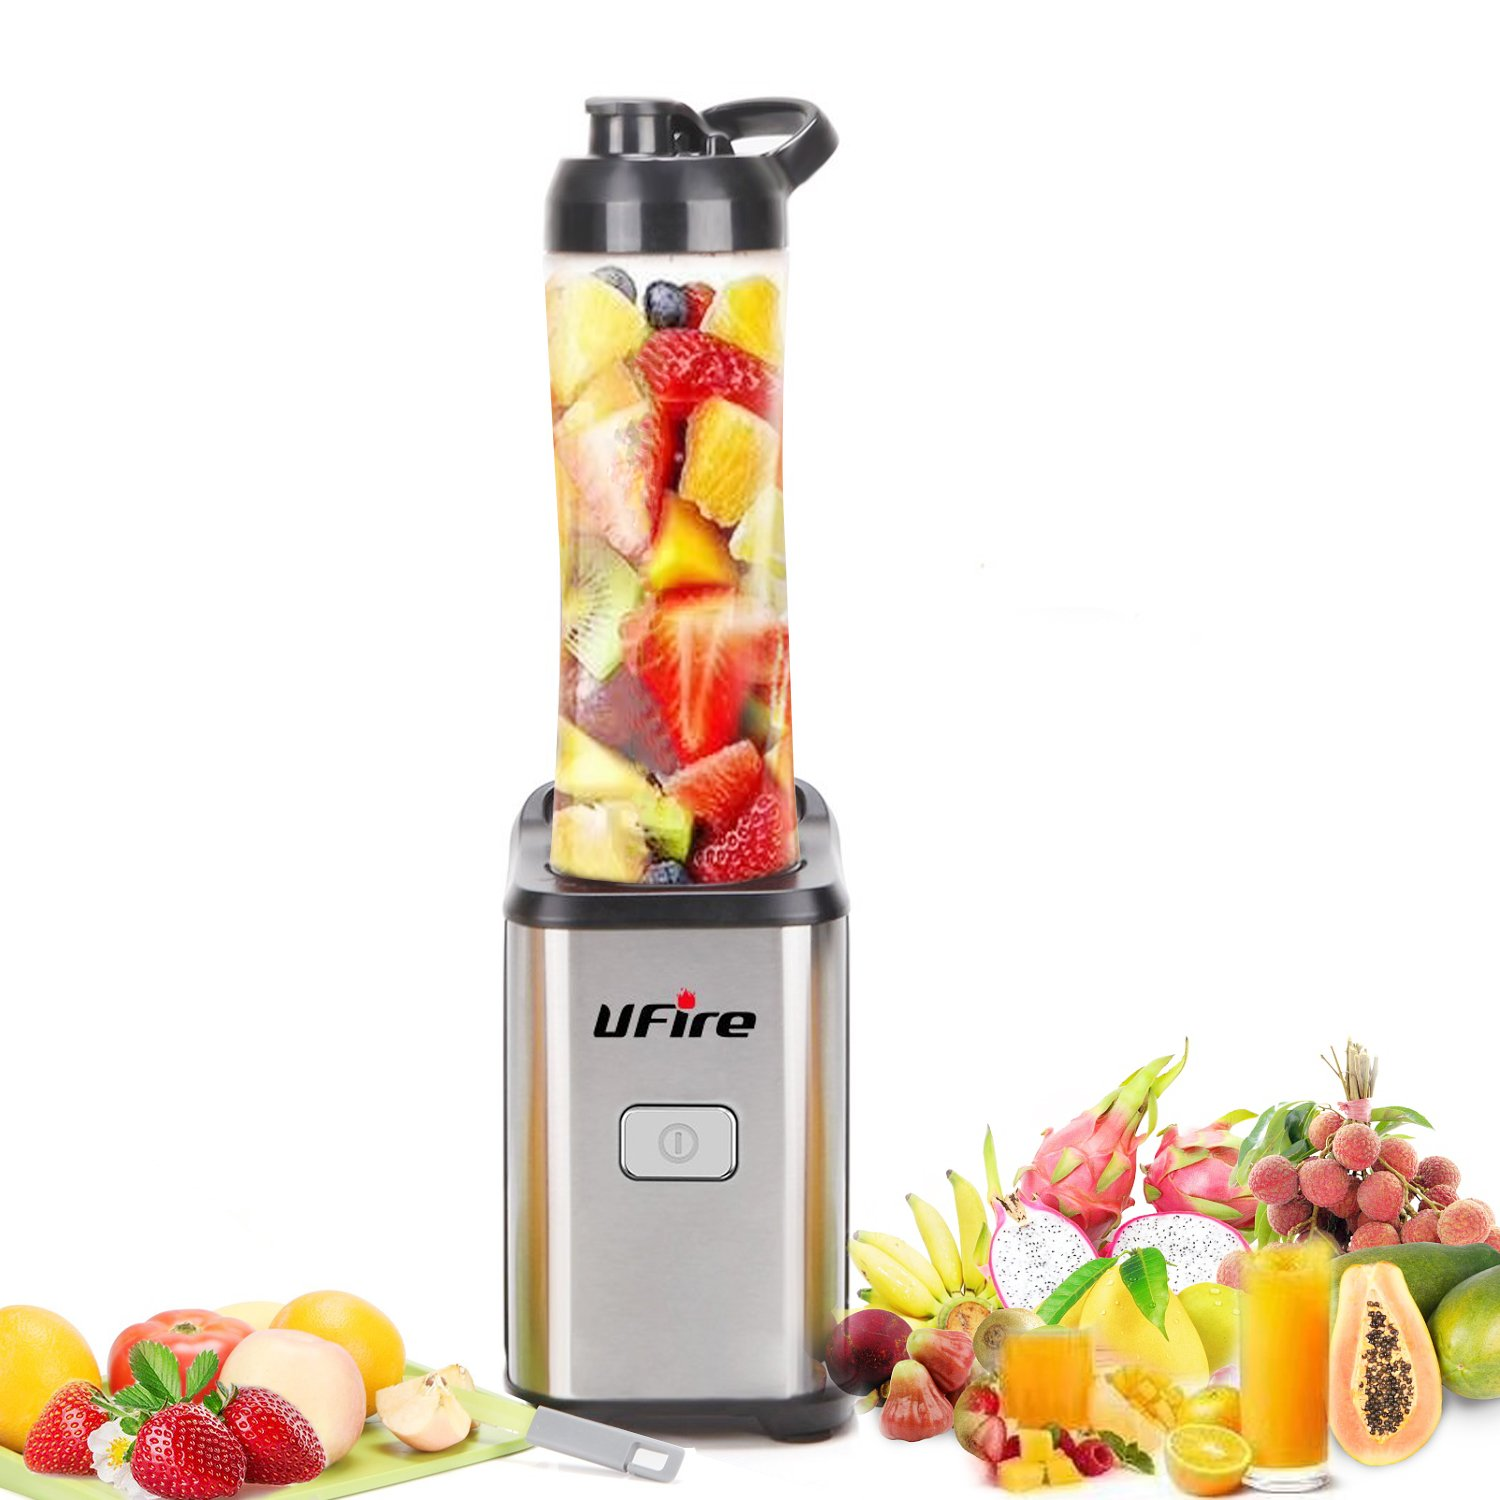 UFire Personal Blender, Single Serve, Stainless Steel Mini Blender with Travel Sports Bottle Lid, Smoothie Blender for Travel, 21 Ounce/ 350W/ Silver